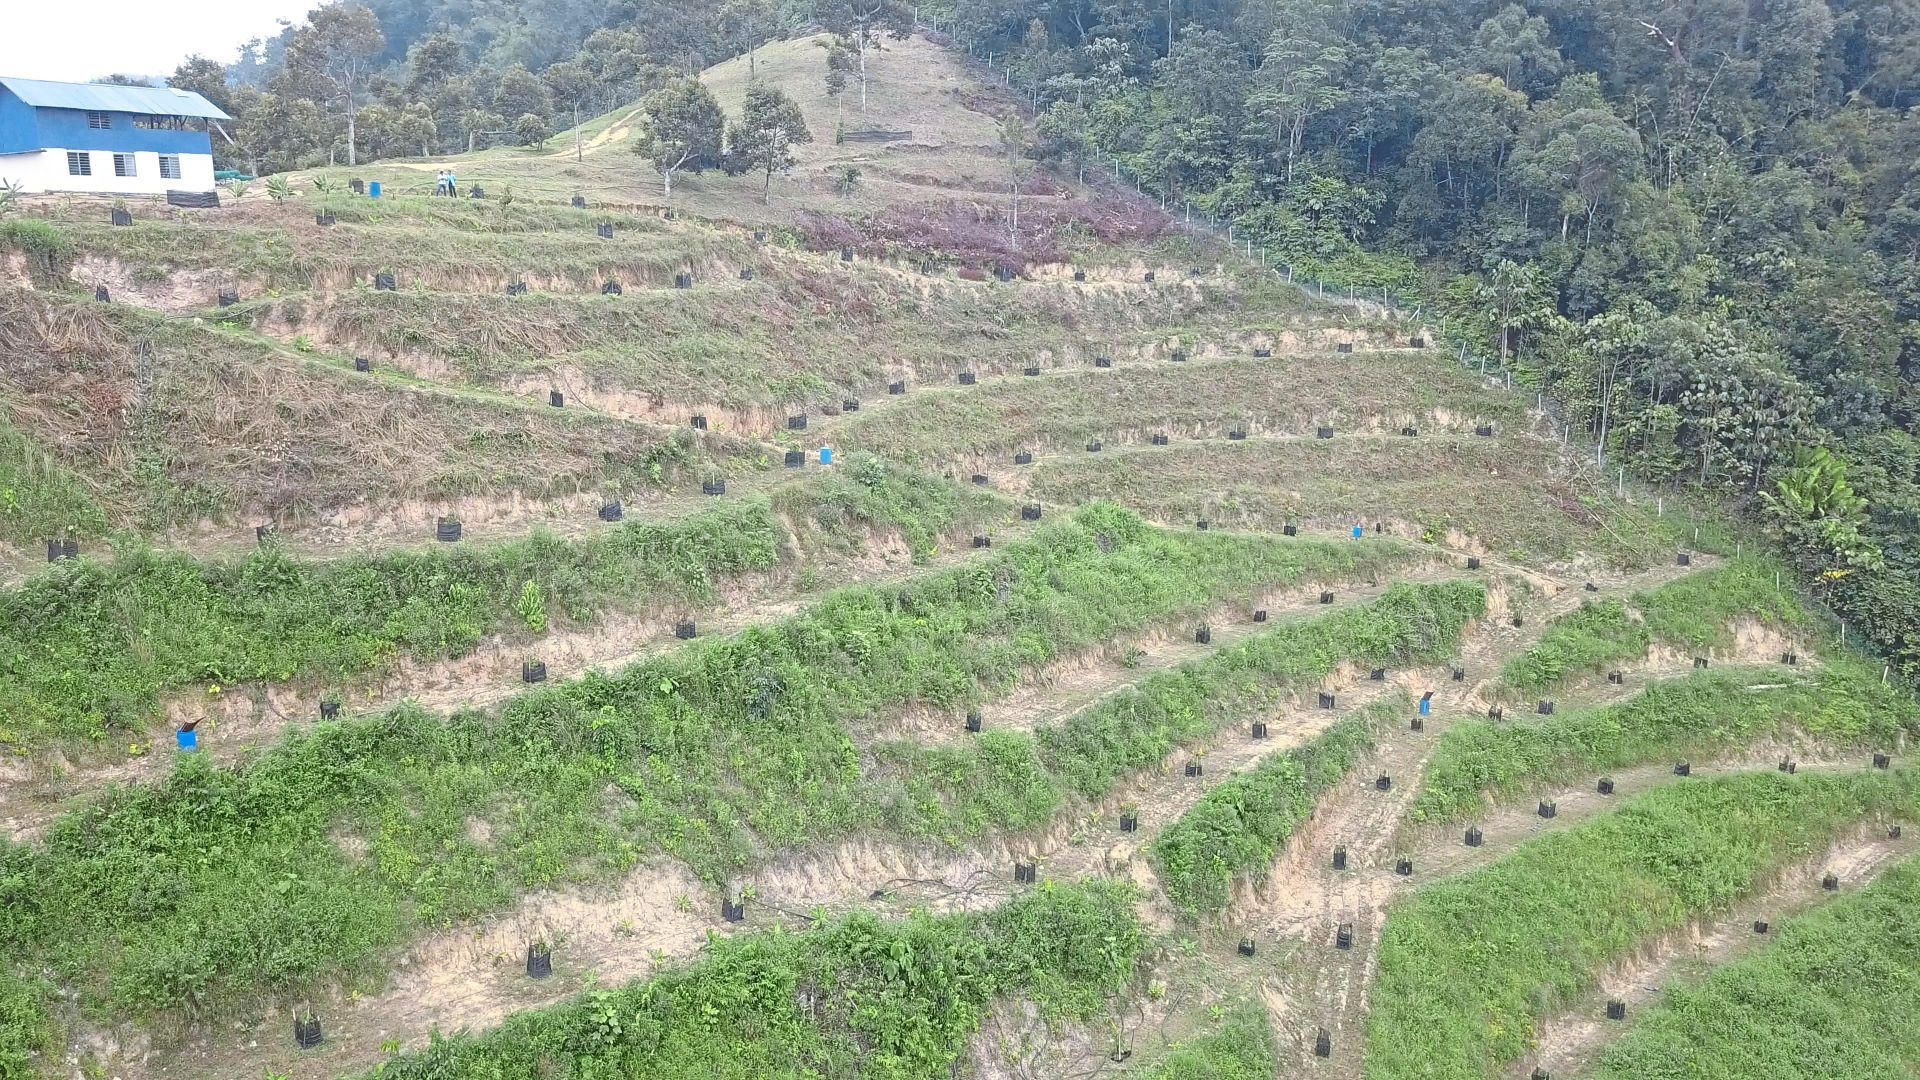 Higher value: The big move into durian plantation has pushed prices for plantation land multiple-fold over the last five years.